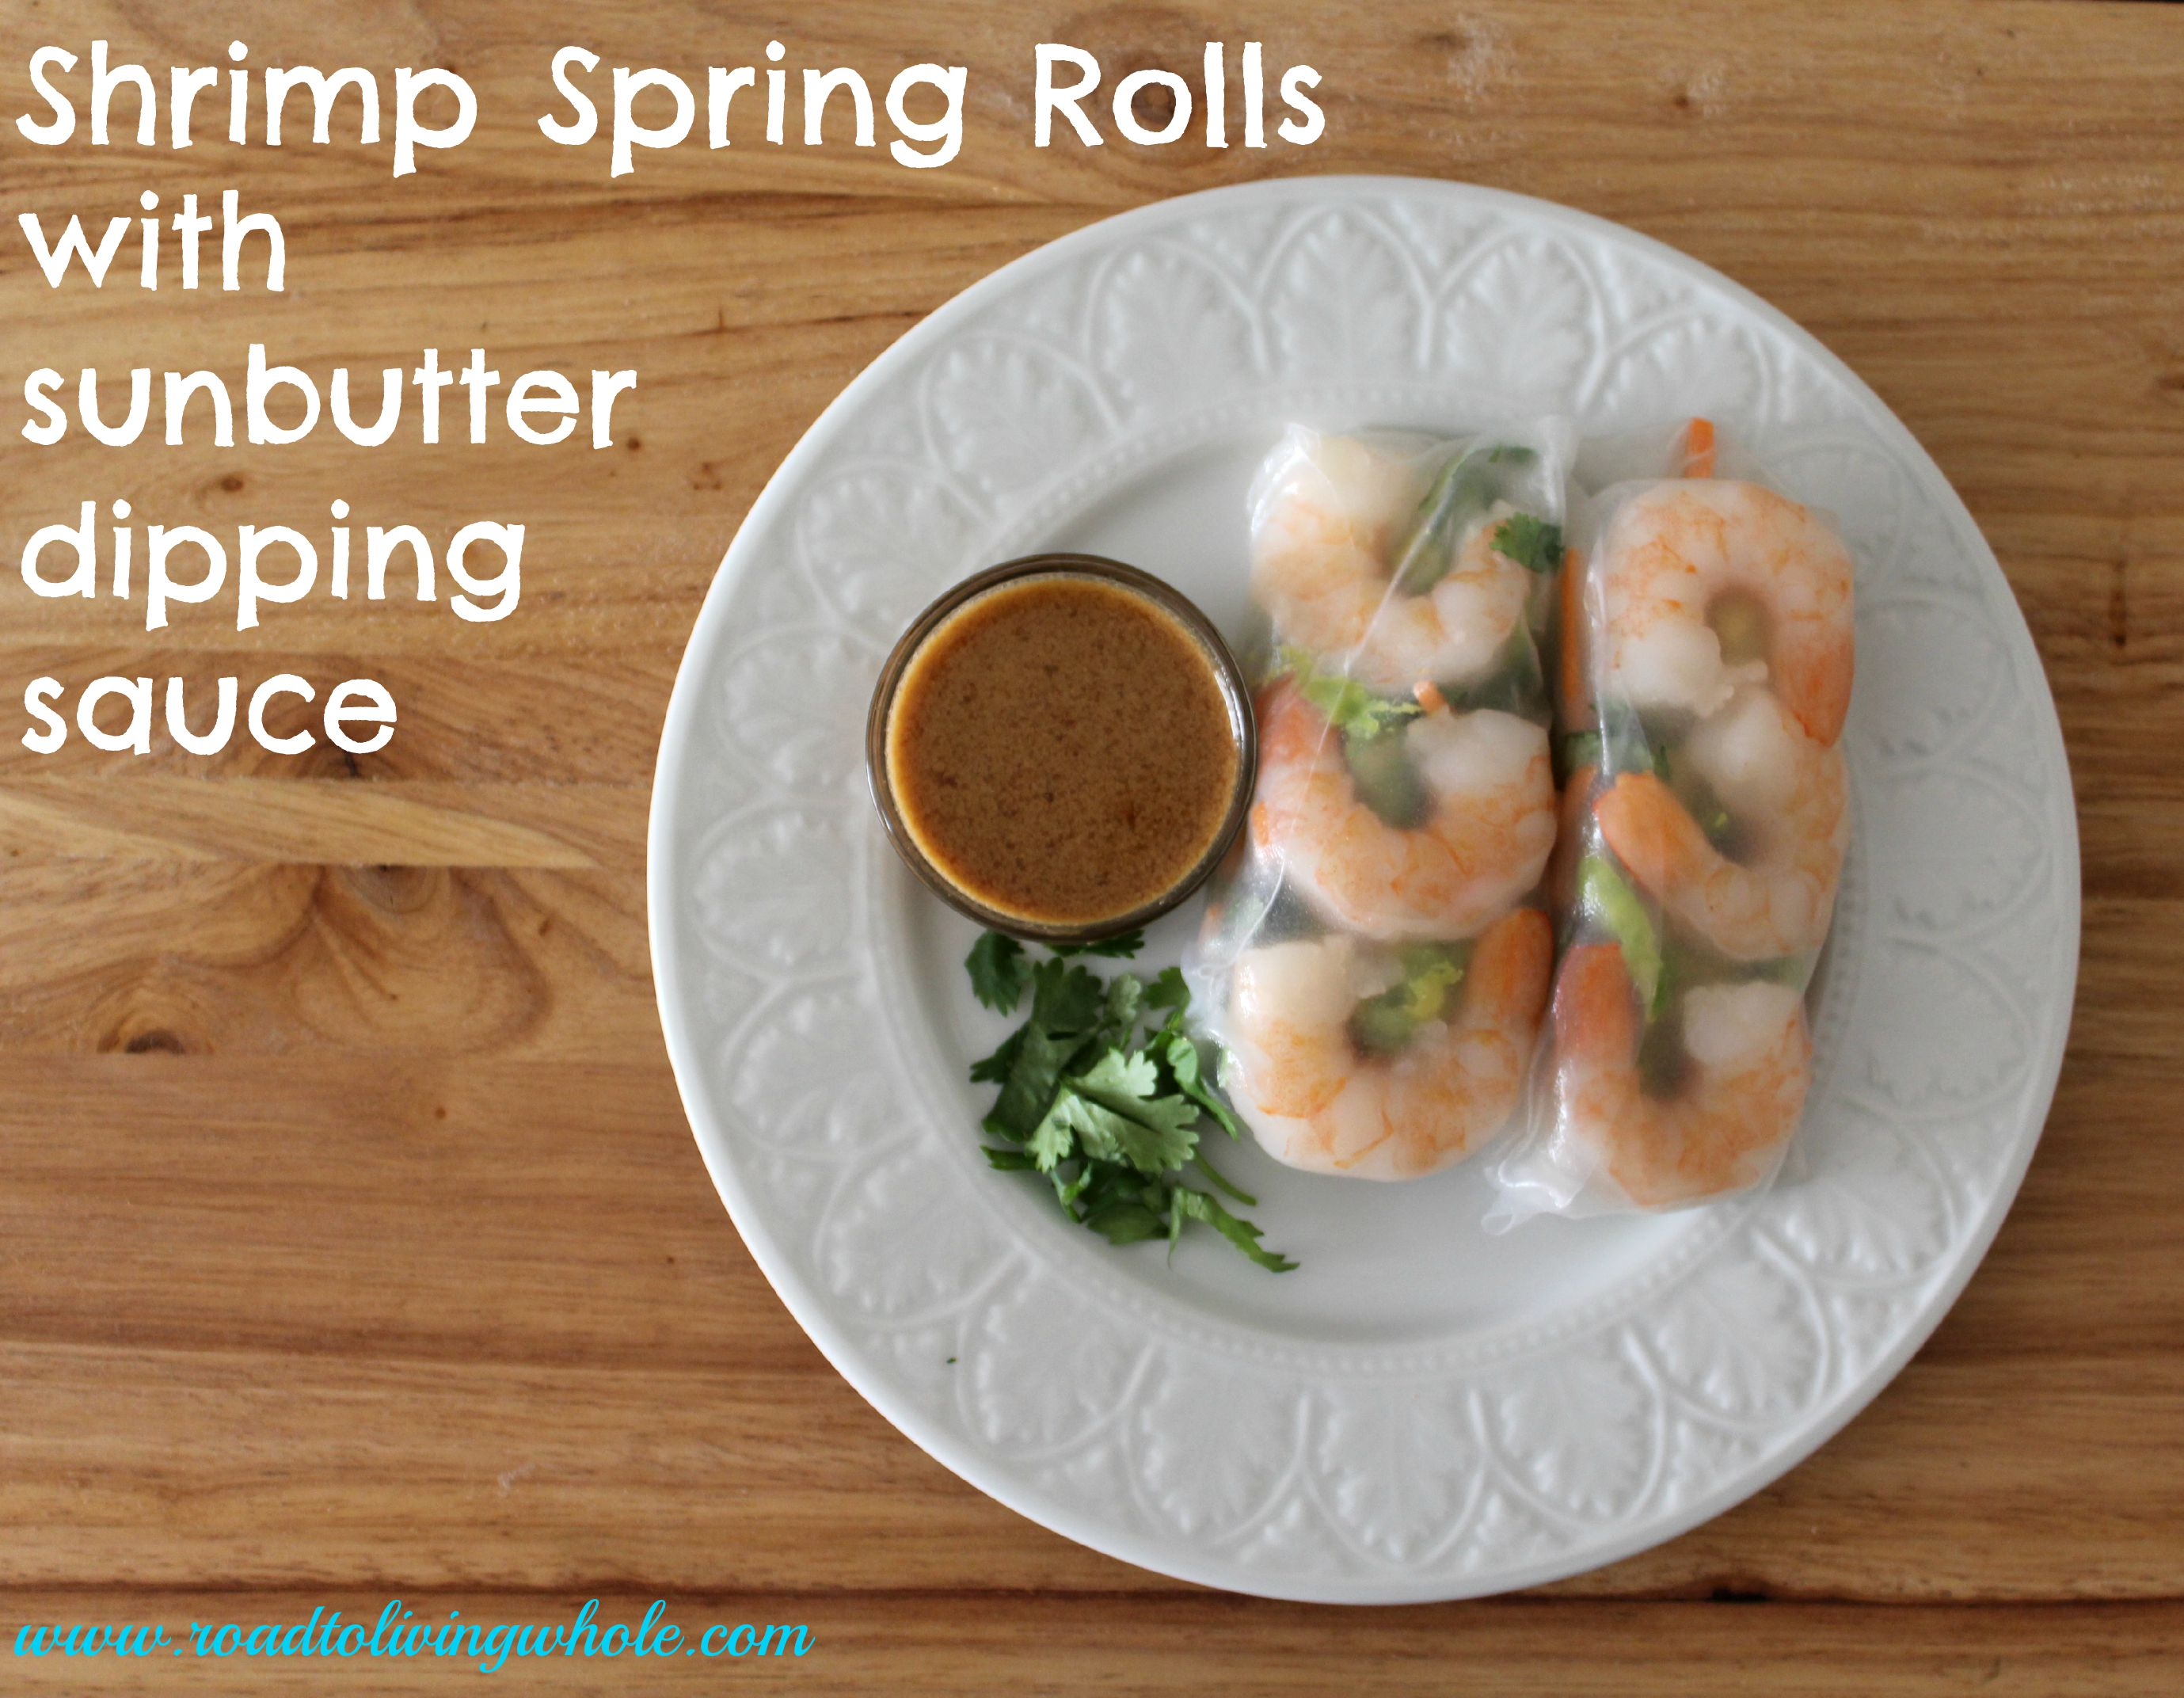 Gluten Free Shrimp Spring Rolls With A Nut And Soy Free Dipping Sauce